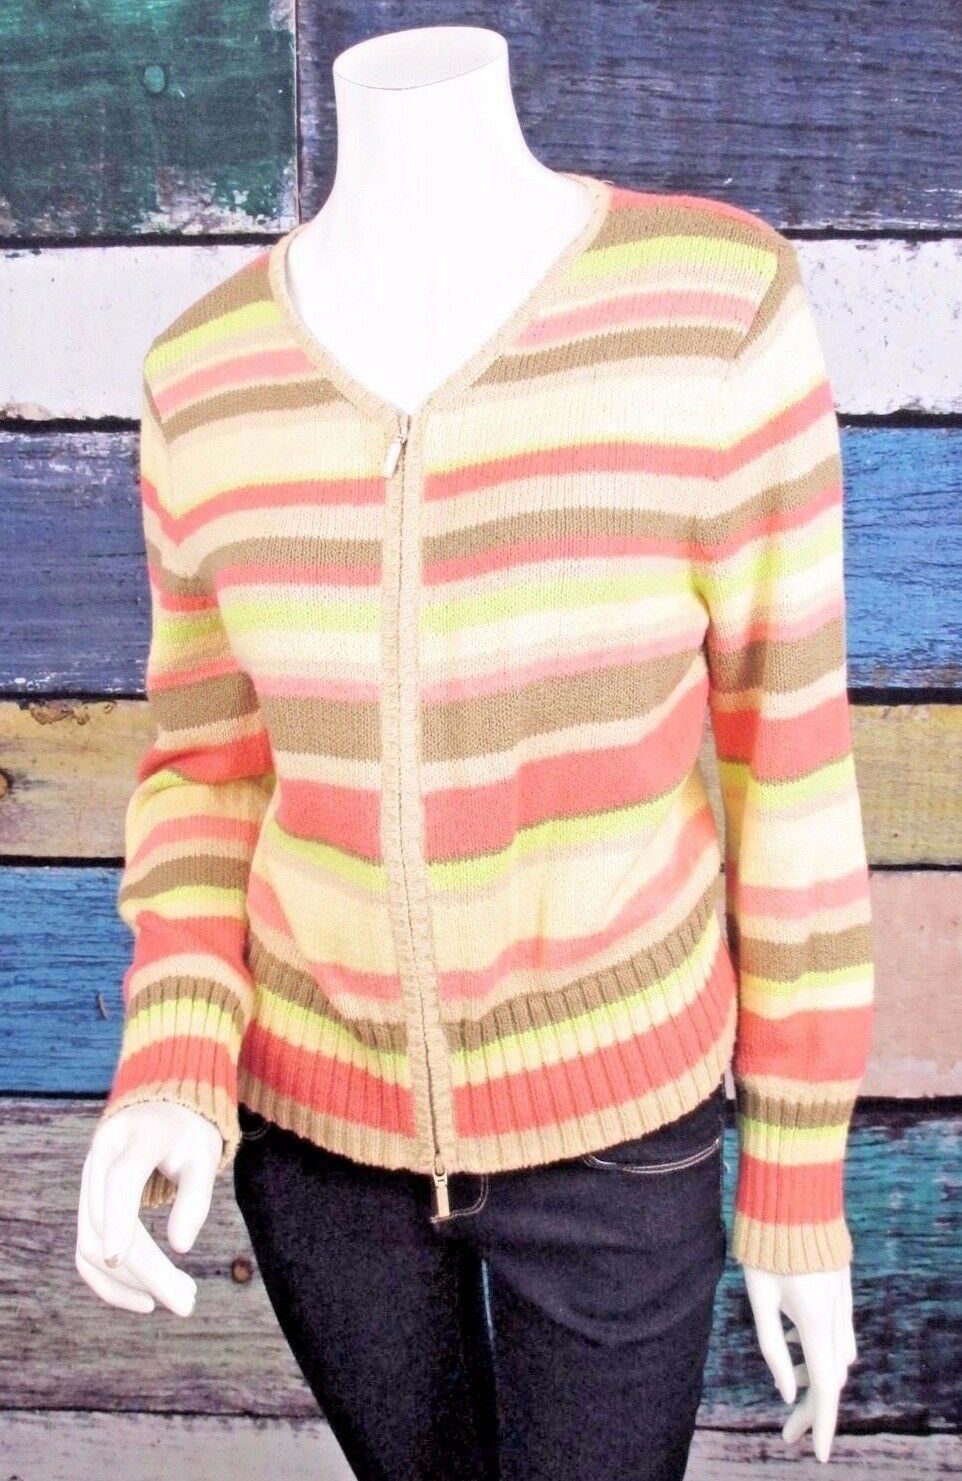 Primary image for Talbots Petites Medium PM Pink Green Beige Striped Full Zip Cardigan Sweater